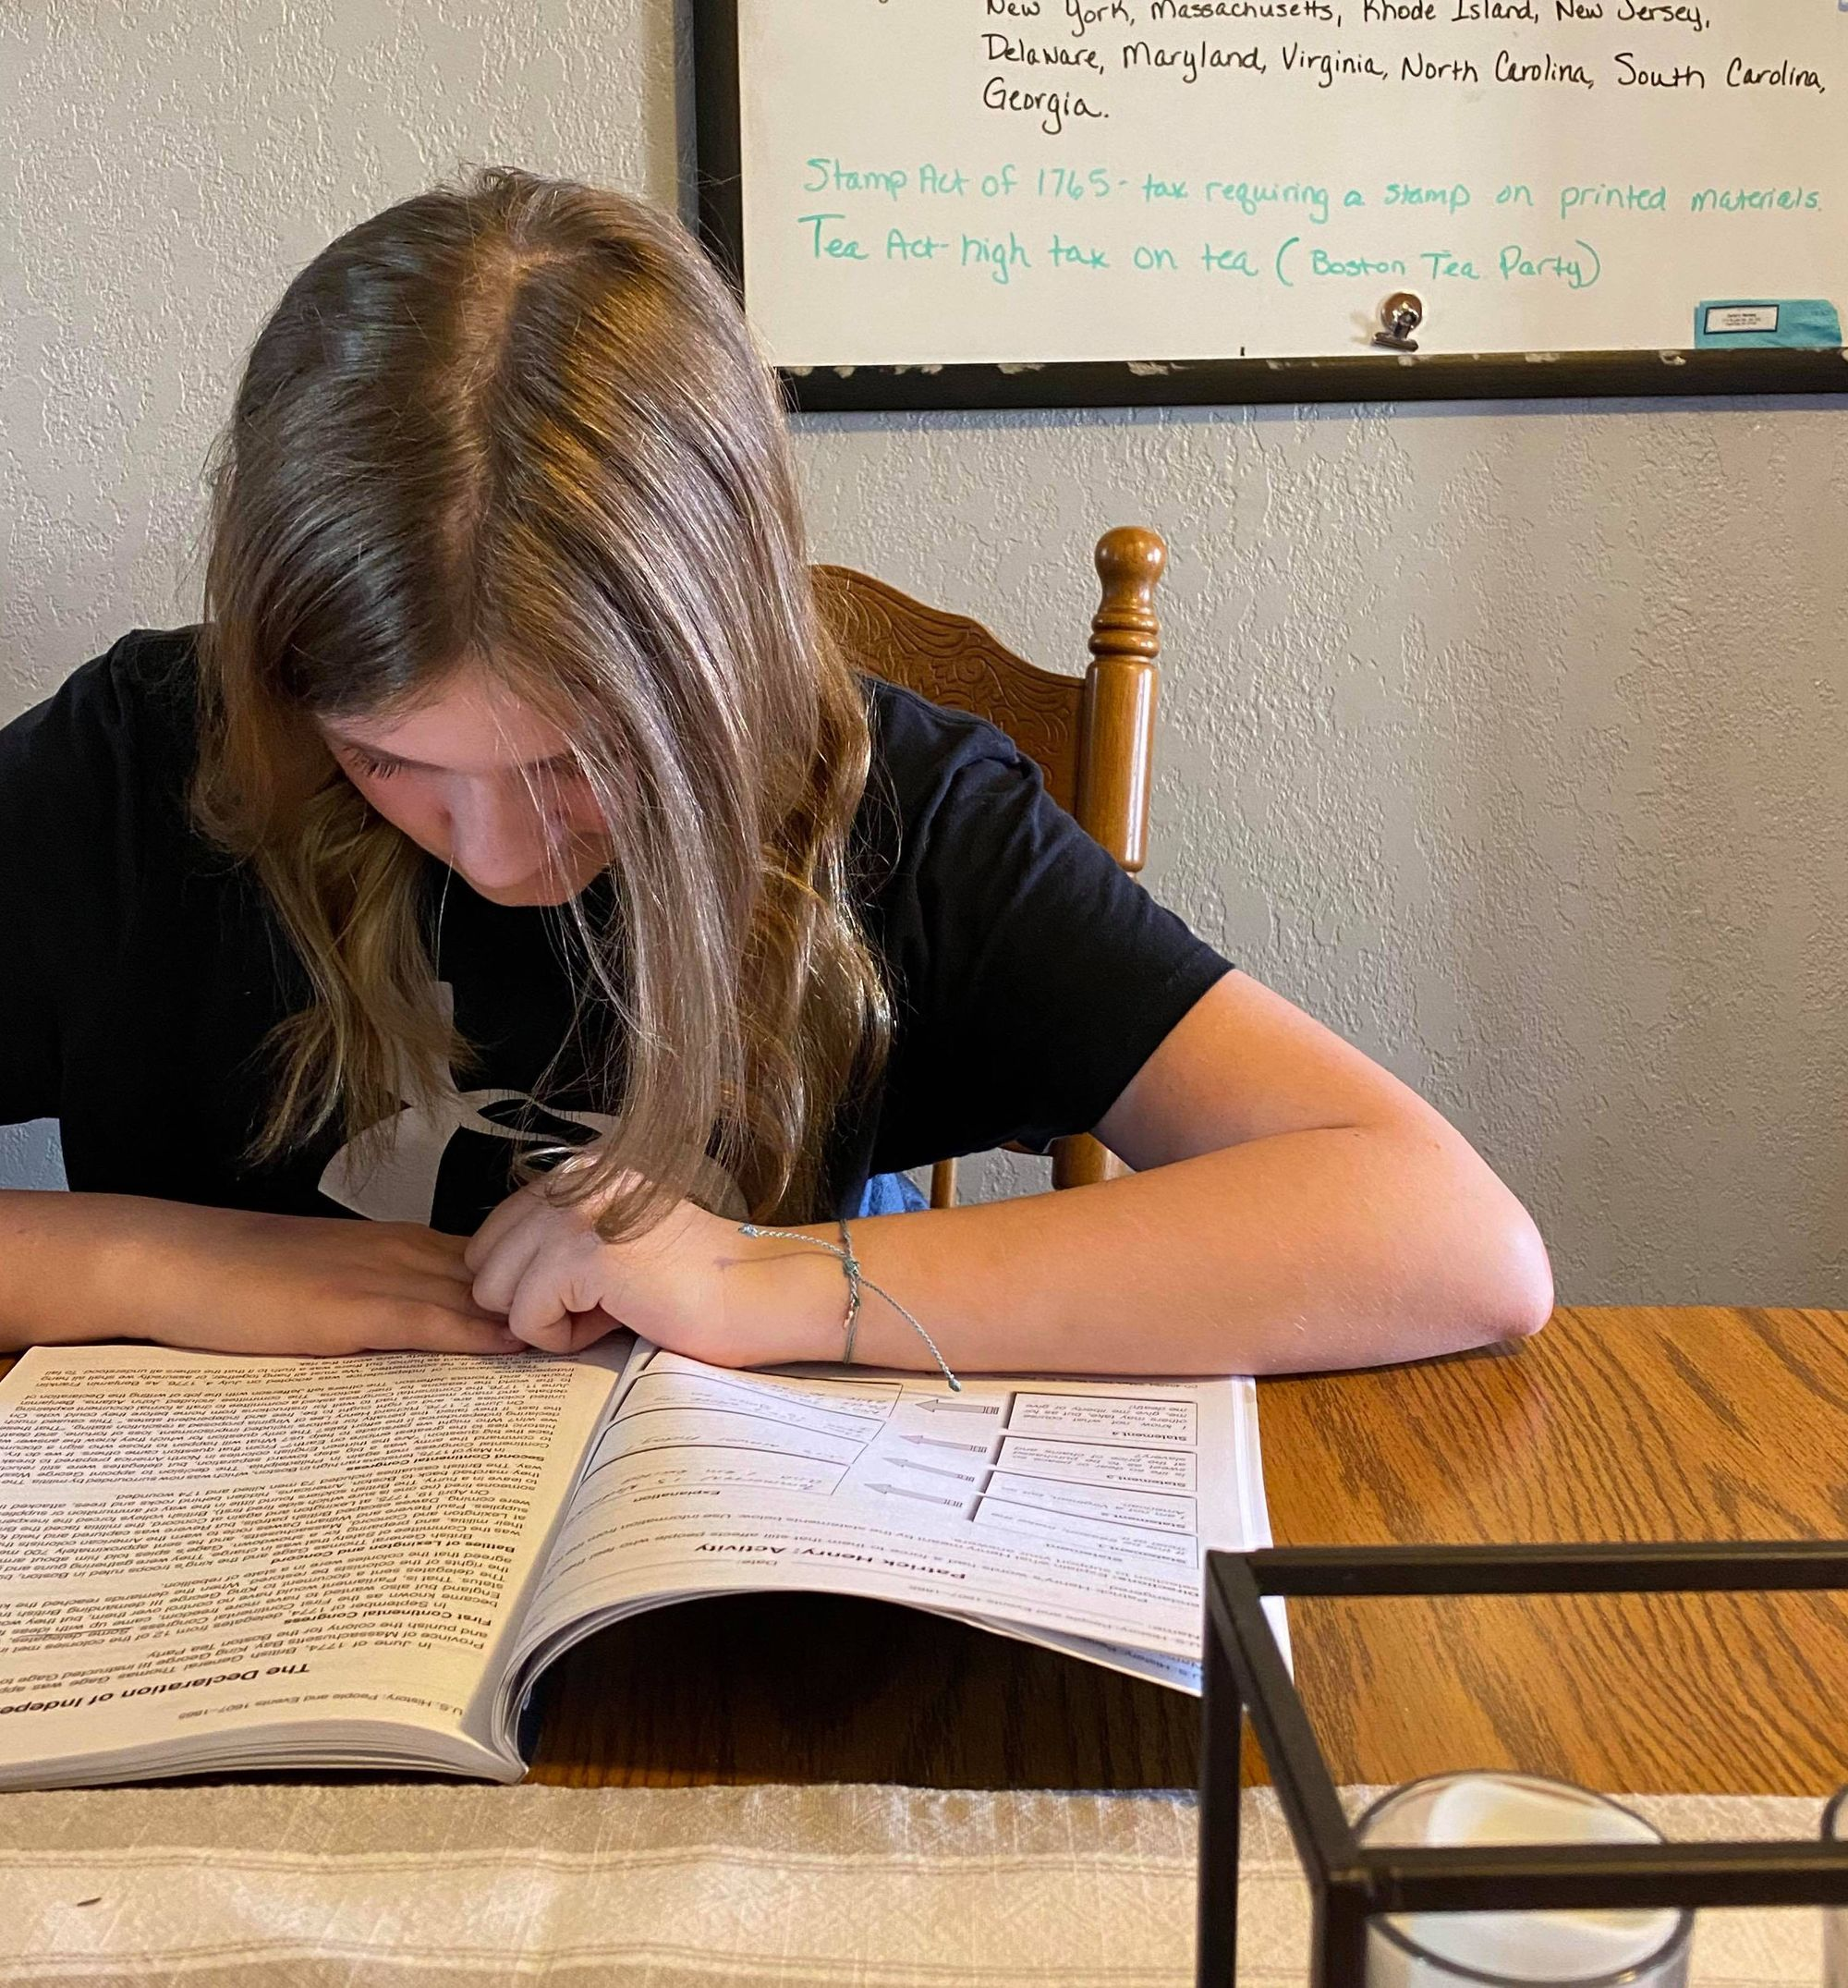 Sioux Falls parent Maureen Patch shows her daughter working on home-schooling